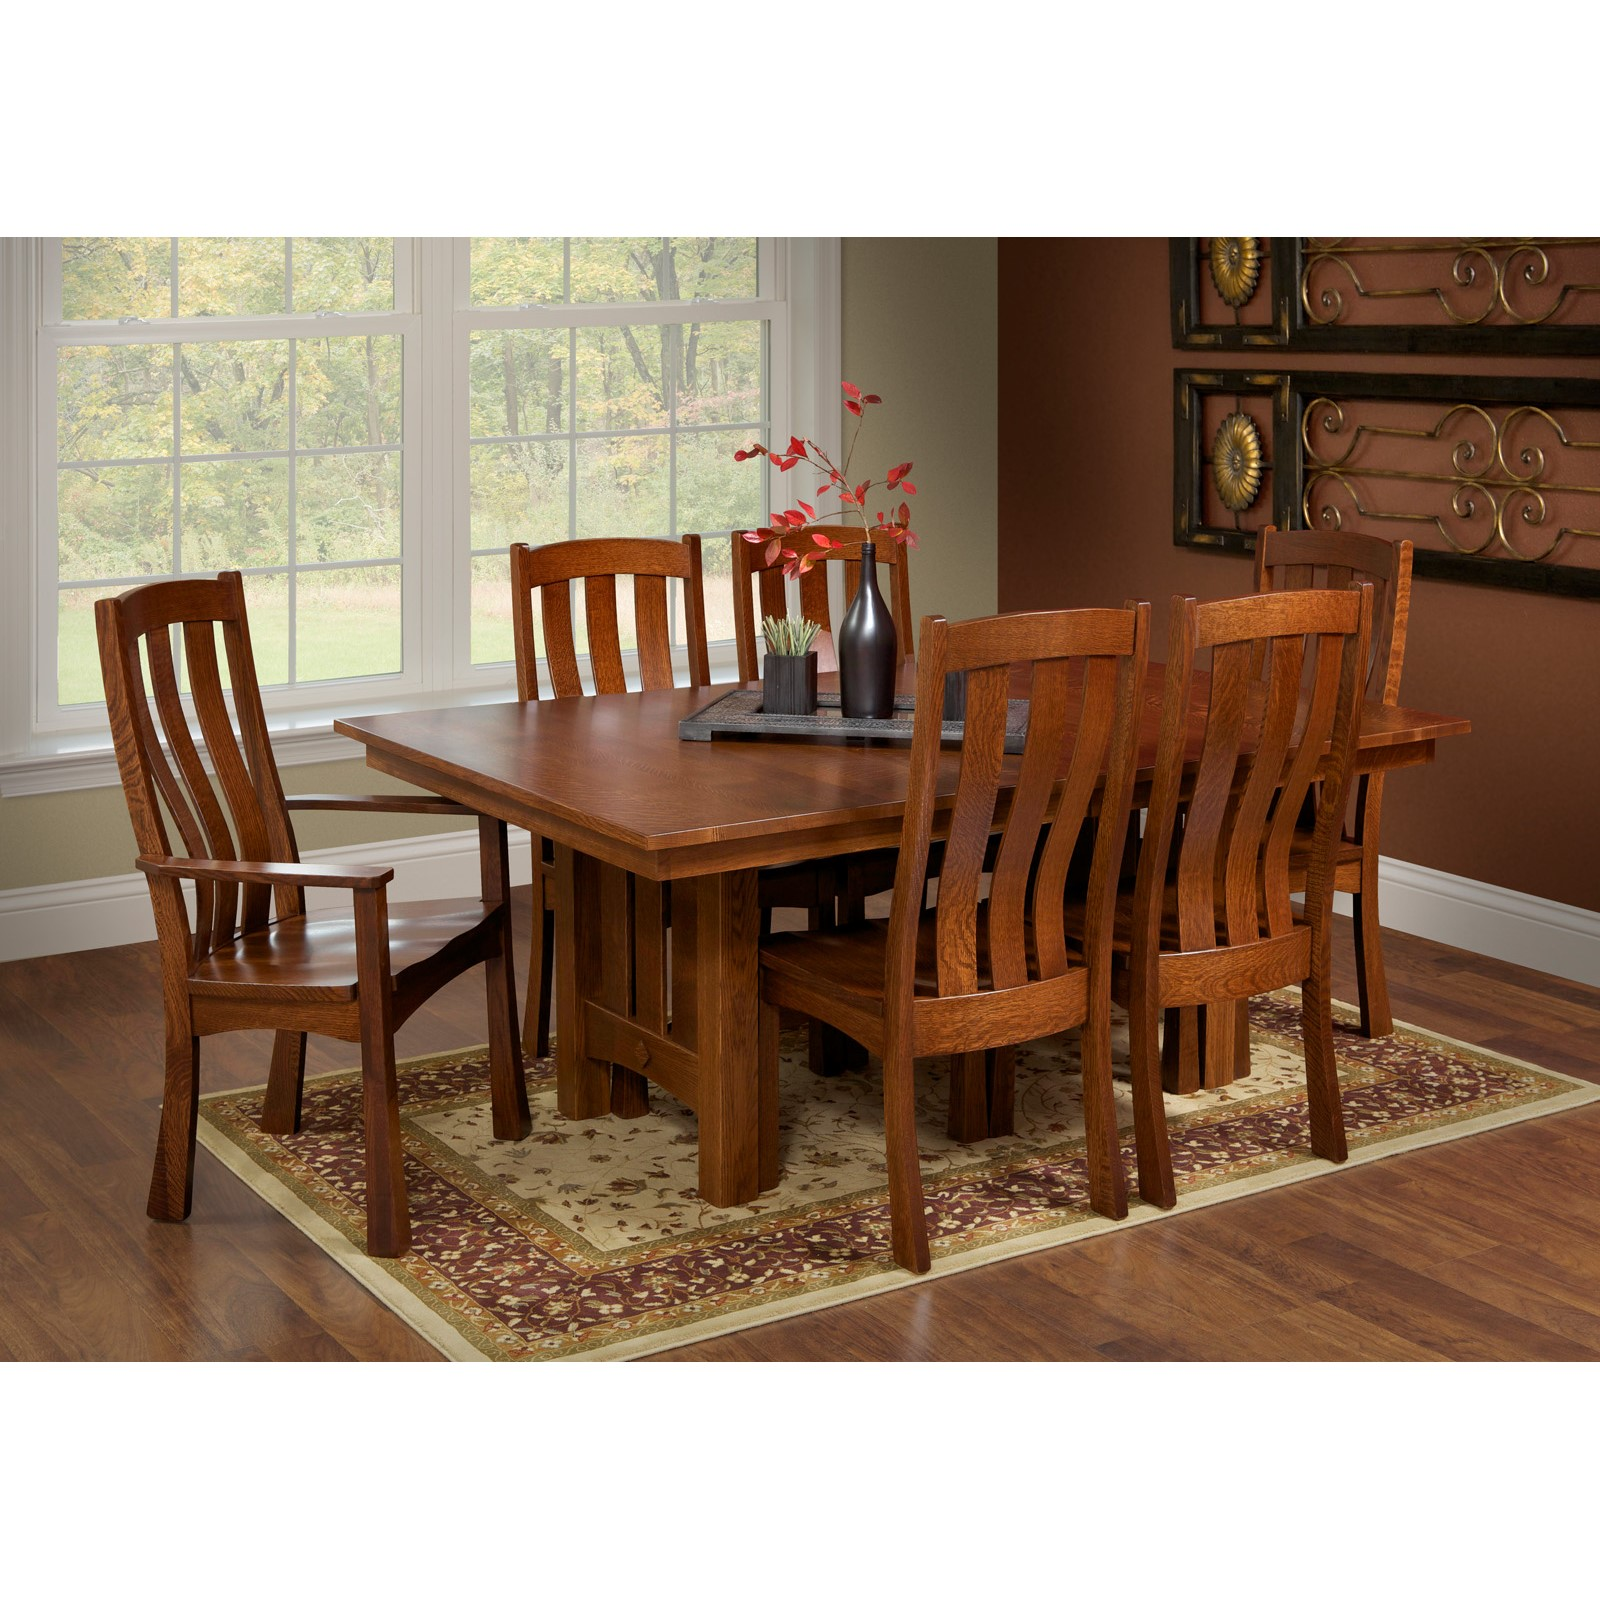 Trailway Sonora 7 Pc Dining Room Set